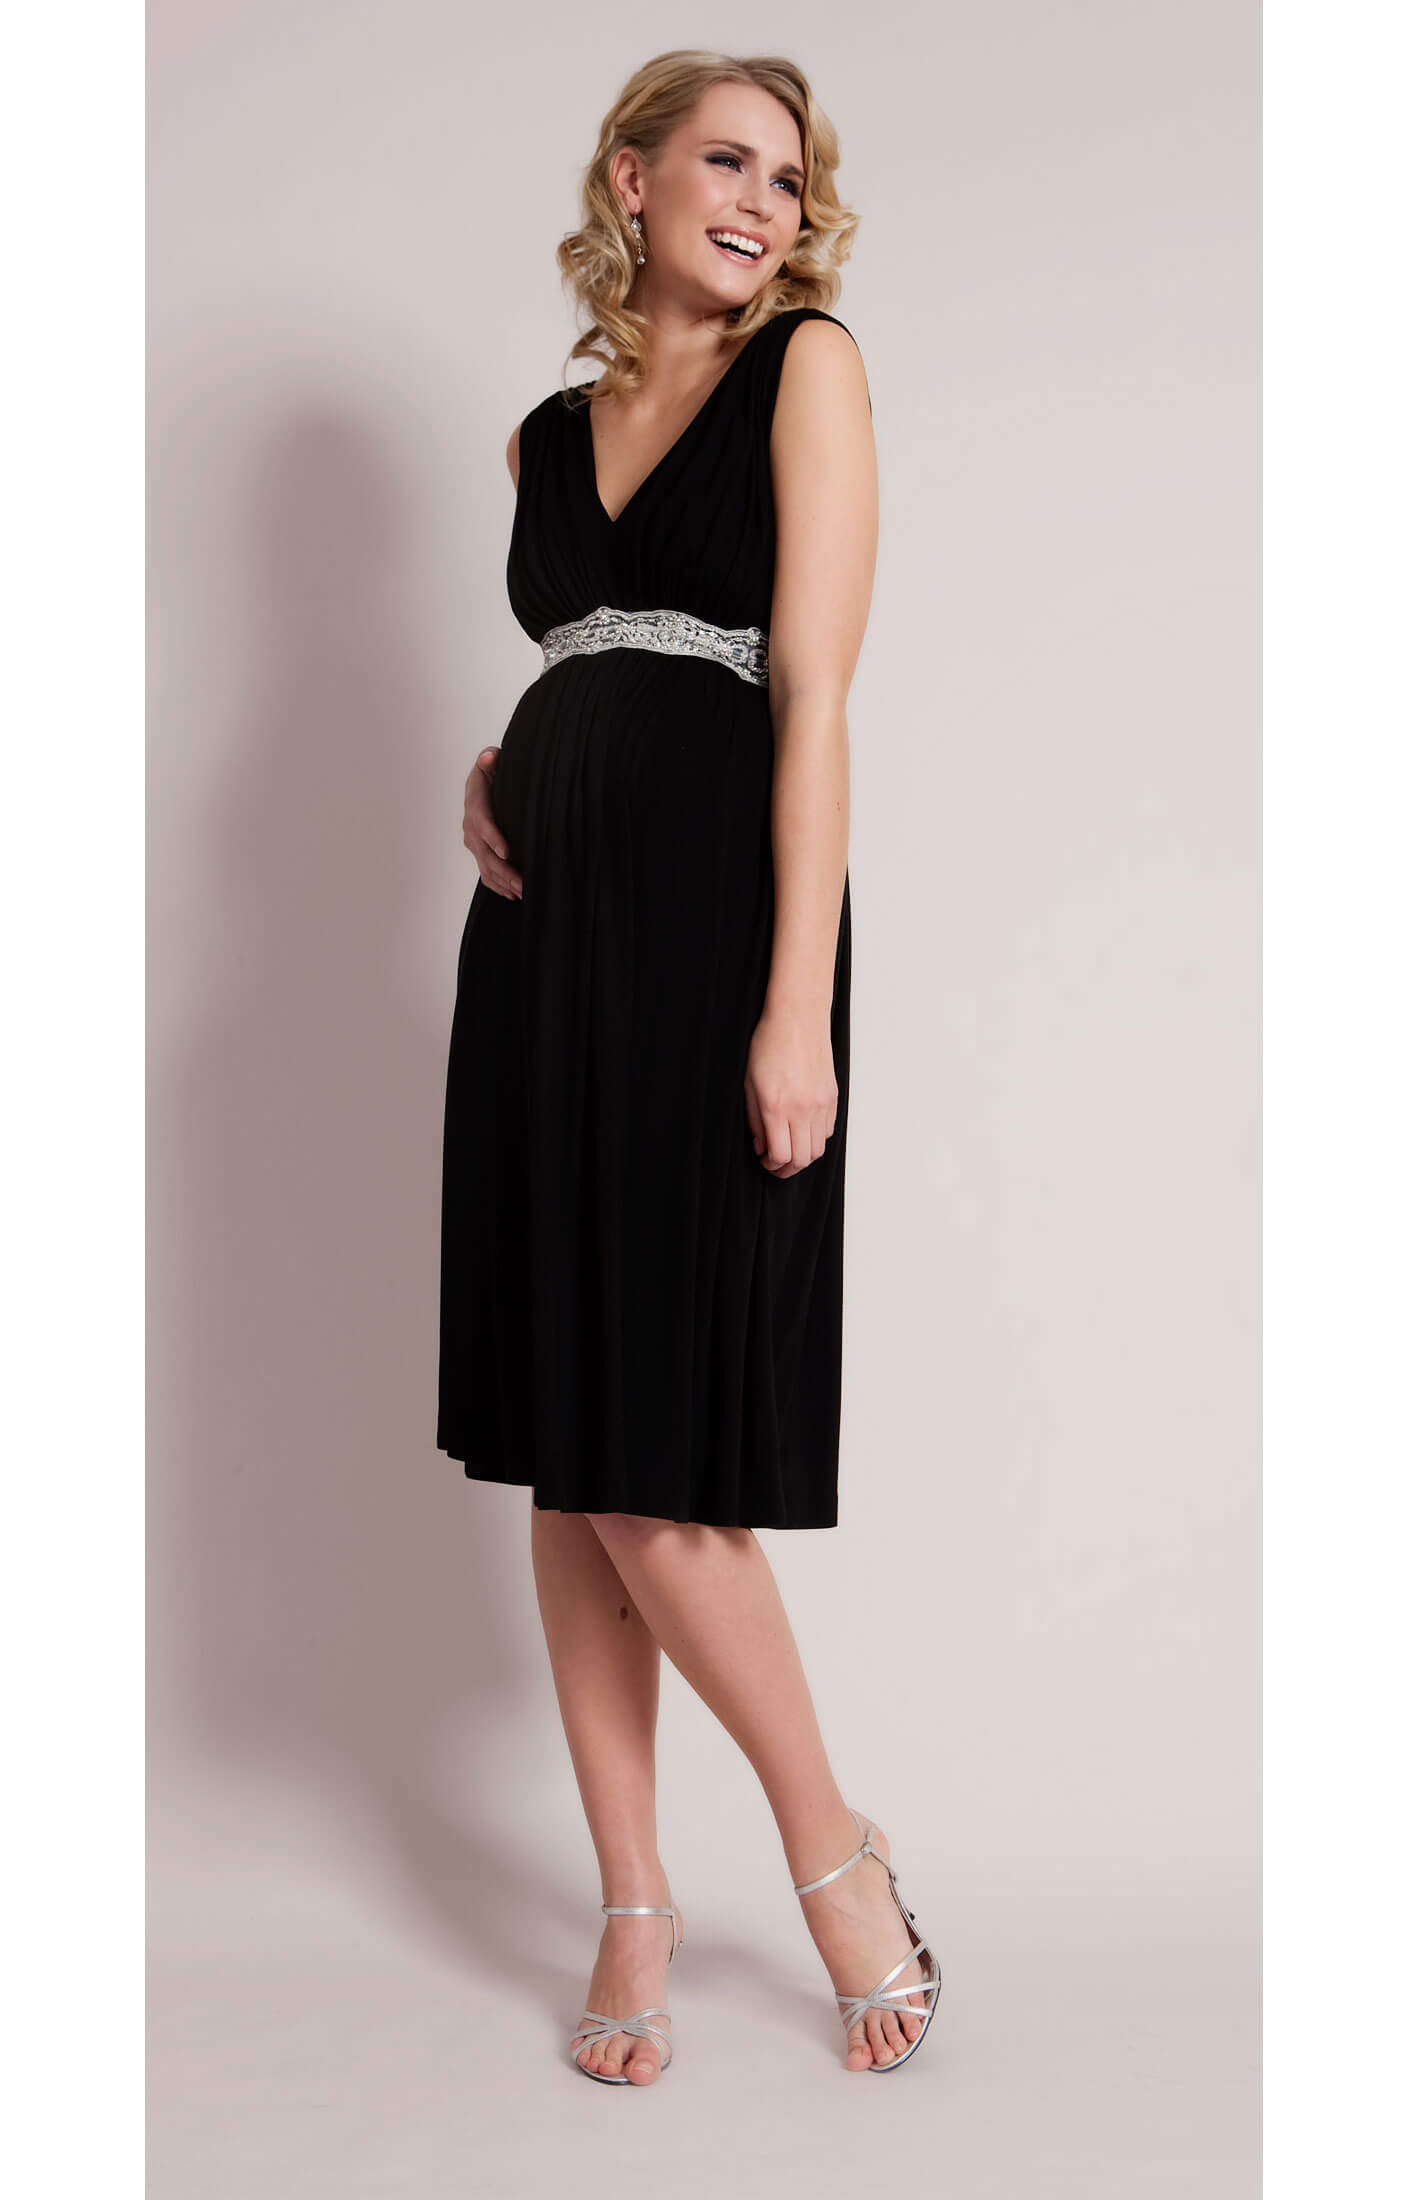 Browse stunning formal maternity dresses for extra special occasions in the Seraphine Luxe Collection. Filter By. Filter By. Category. Evening Dresses (30) Maternity Wedding Dresses (20) Maternity Bridesmaid Dresses Black Lace Maternity Dress. US$ View Details. AS SEEN ON The Red Carpet. Sparkly Maternity Cocktail Dress.